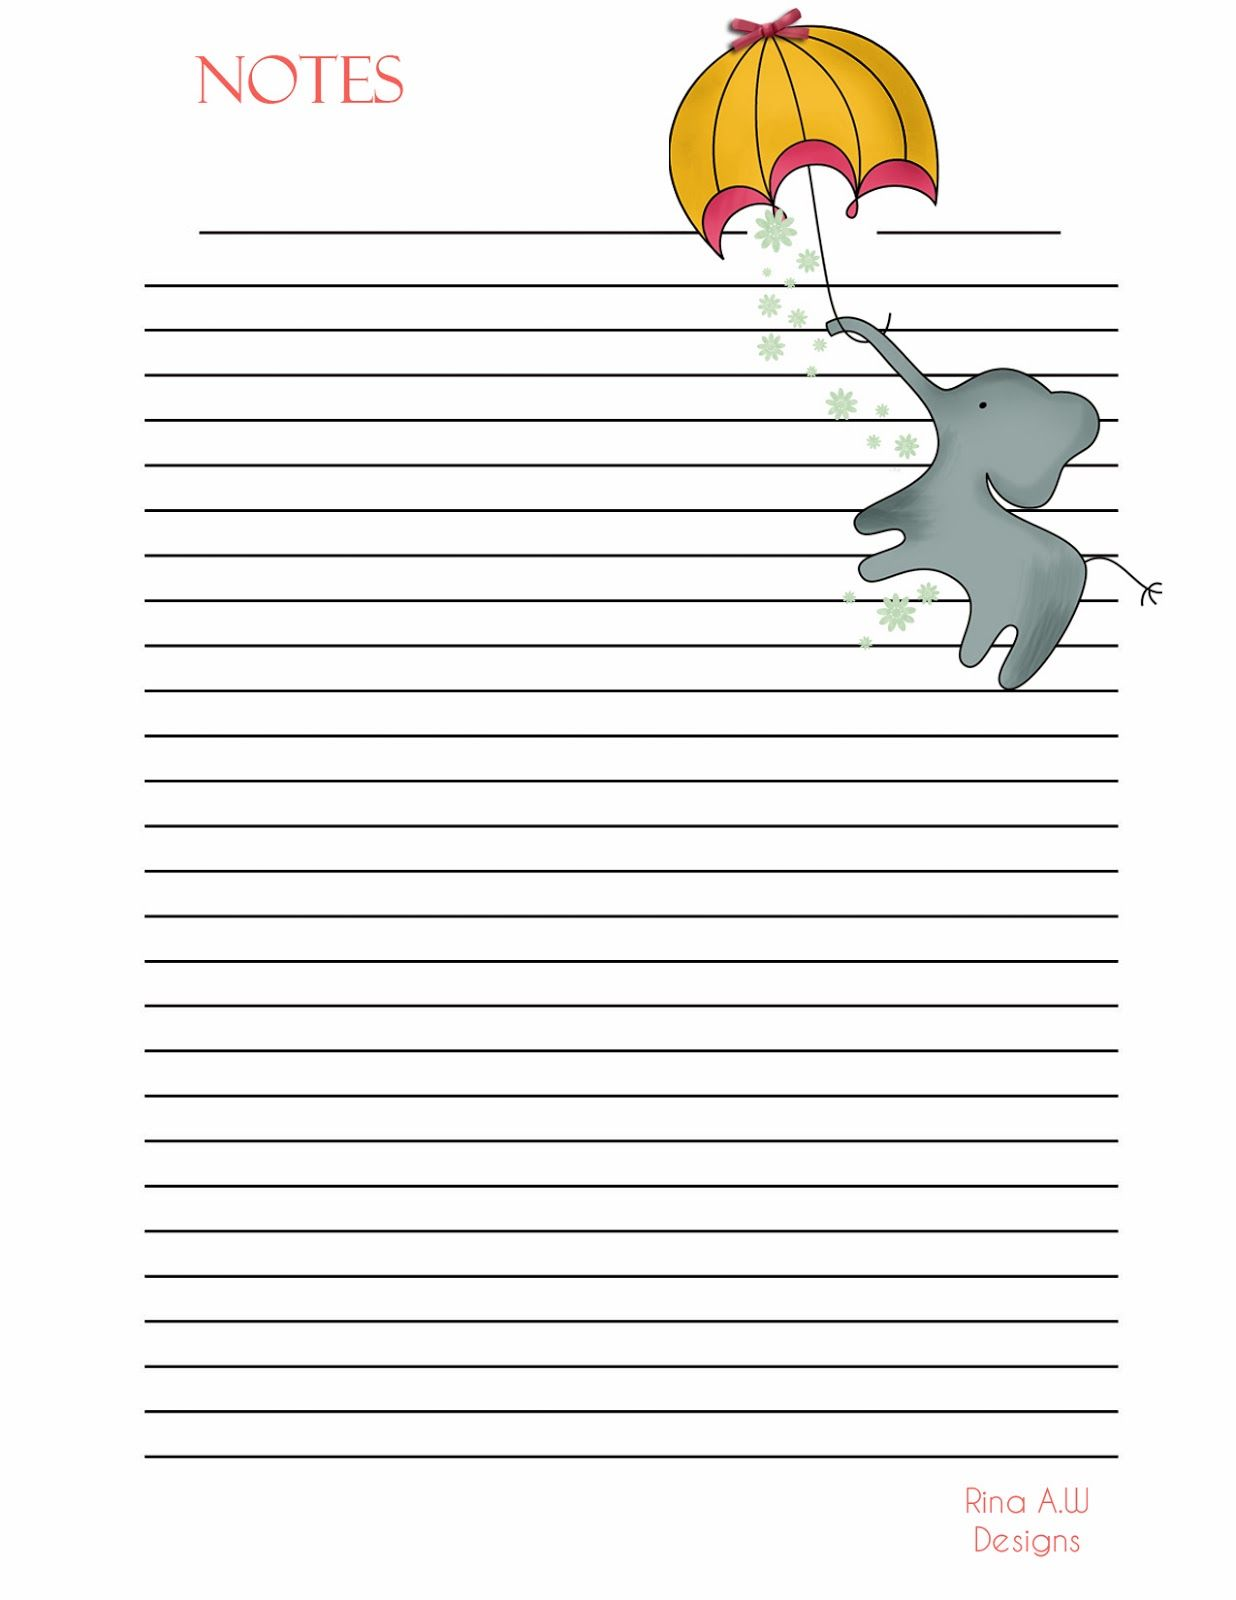 rina loves: free note paper printable | printables | pinterest